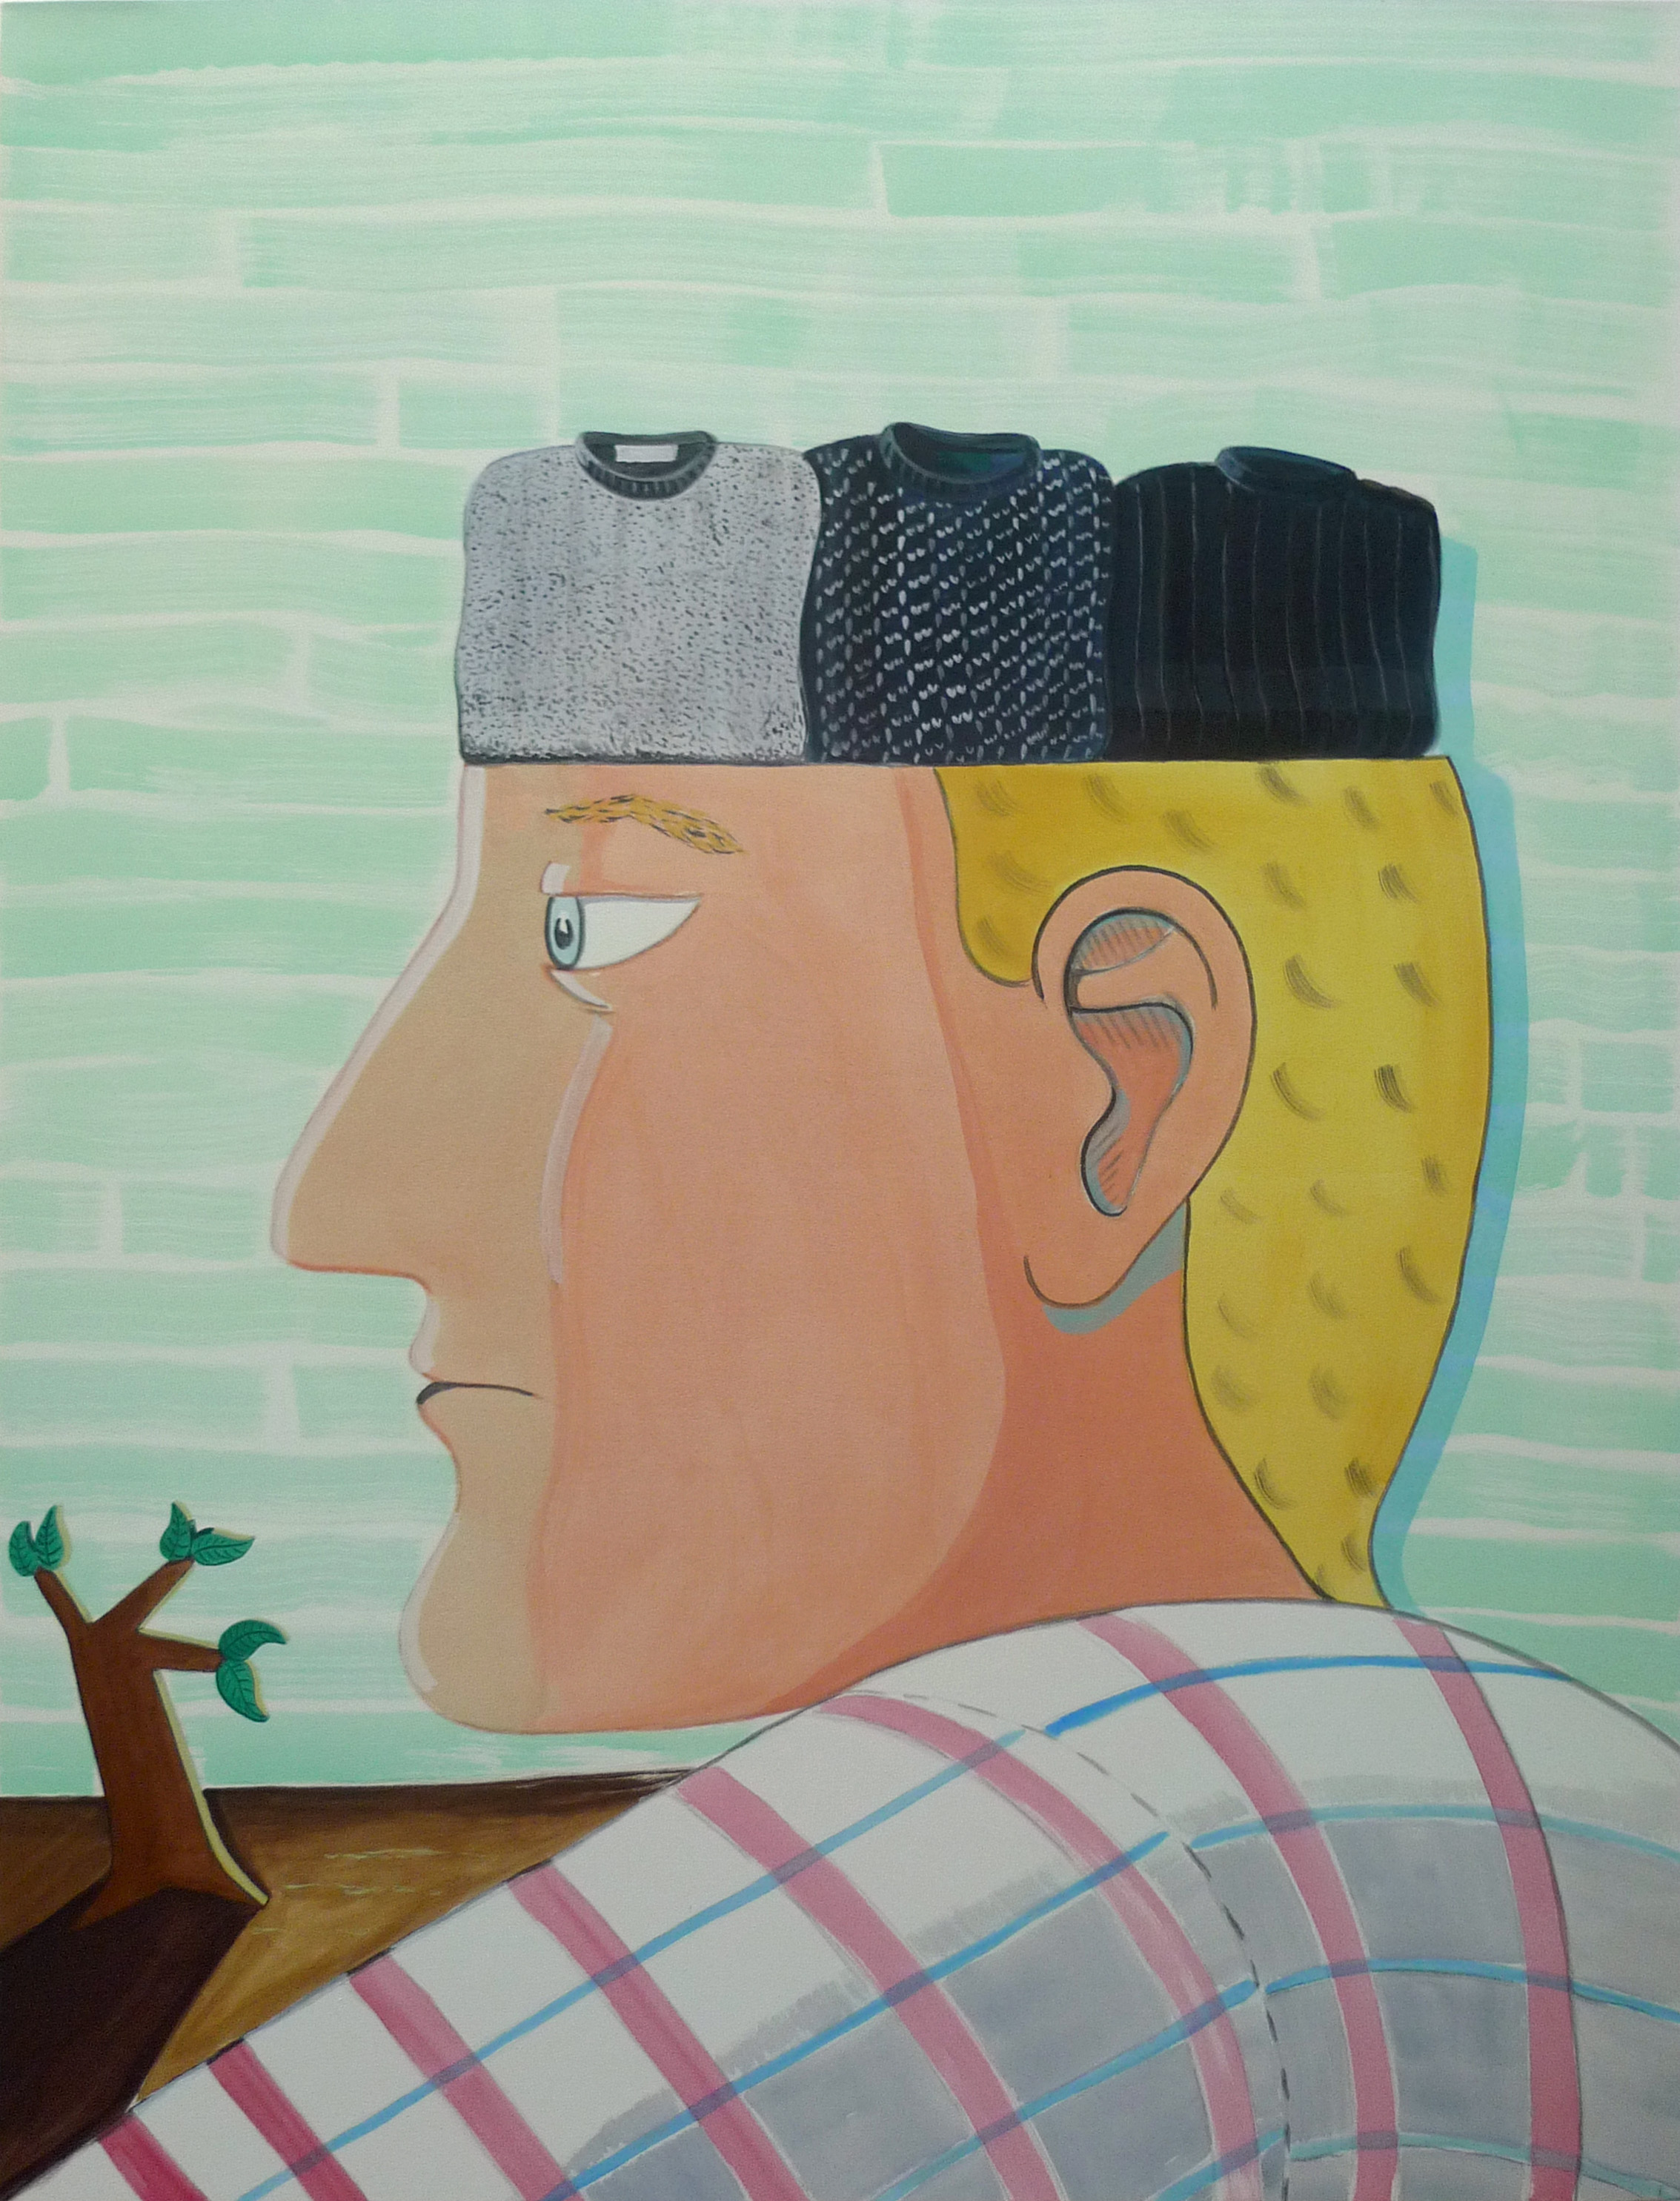 Knitted Thoughts  2014 Acrylic on canvas, 179 x 137 cm